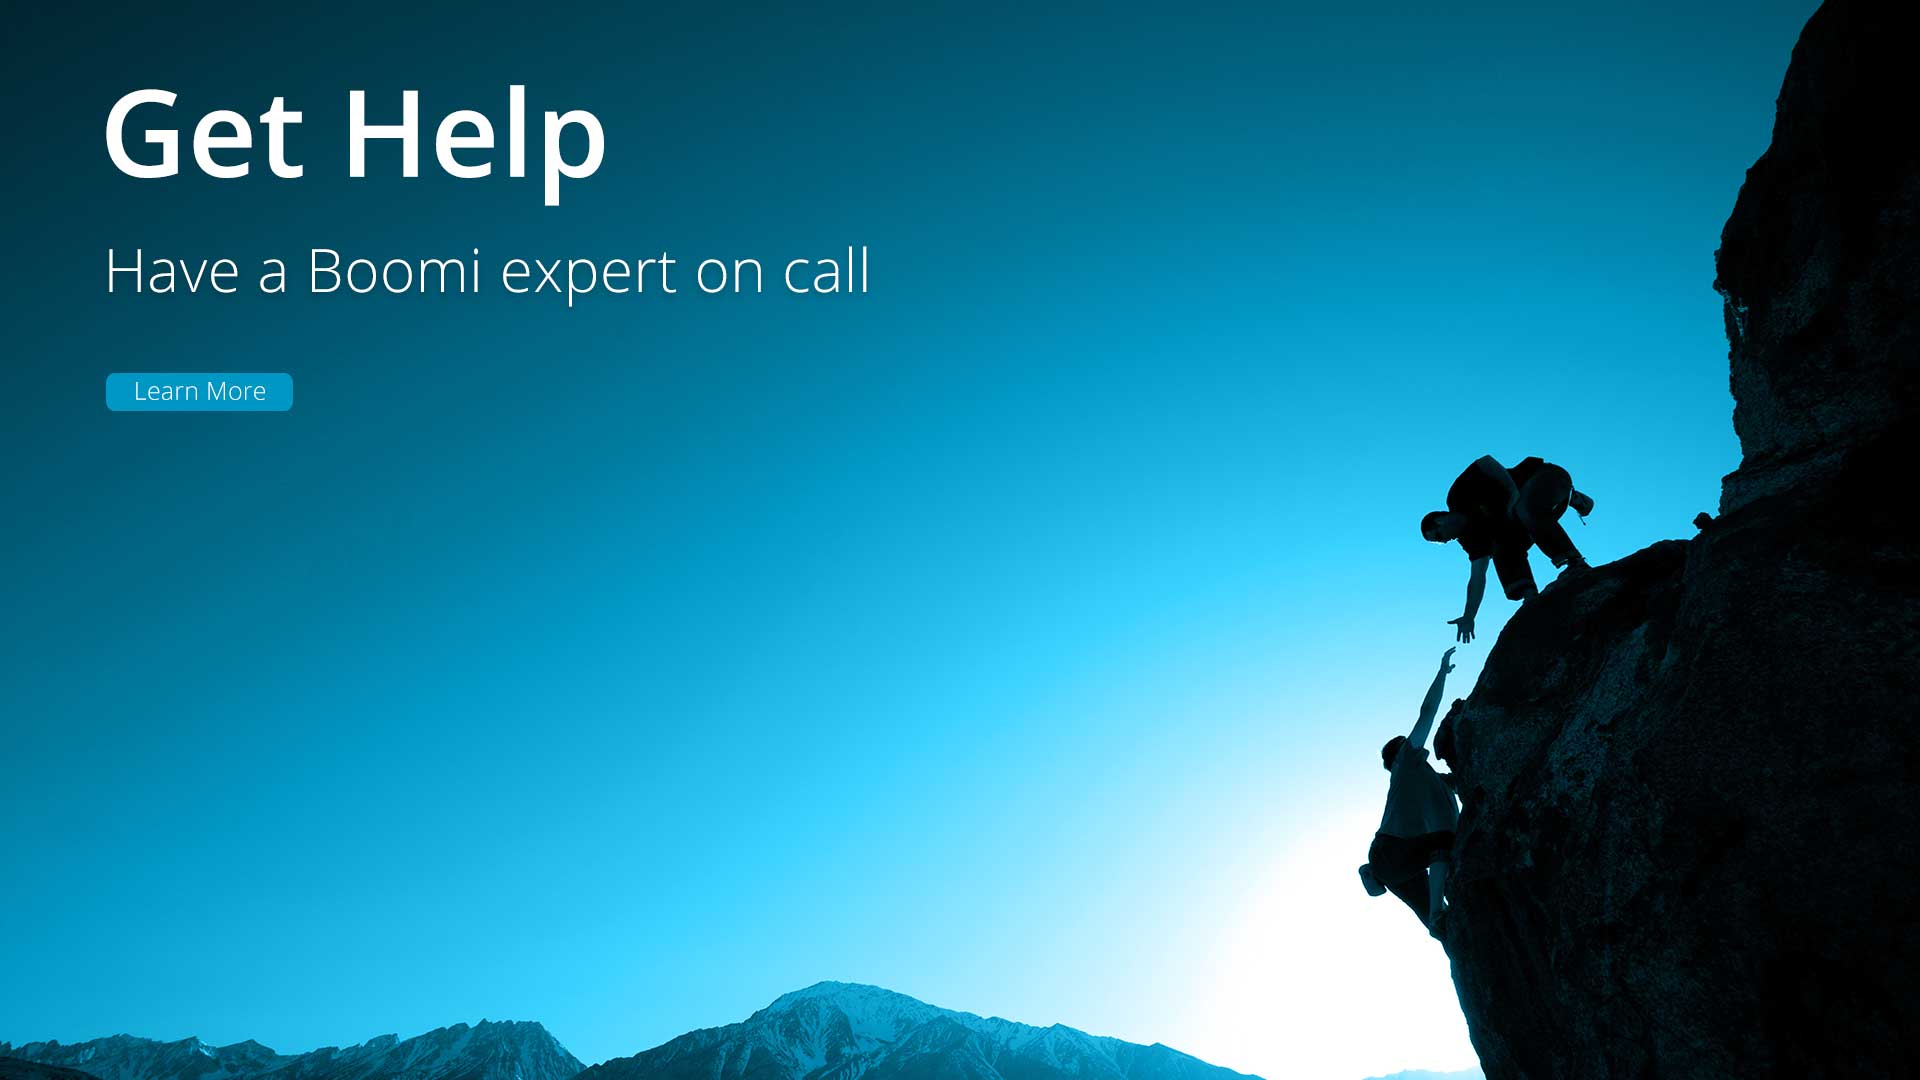 Have a Boomi Expert on Call